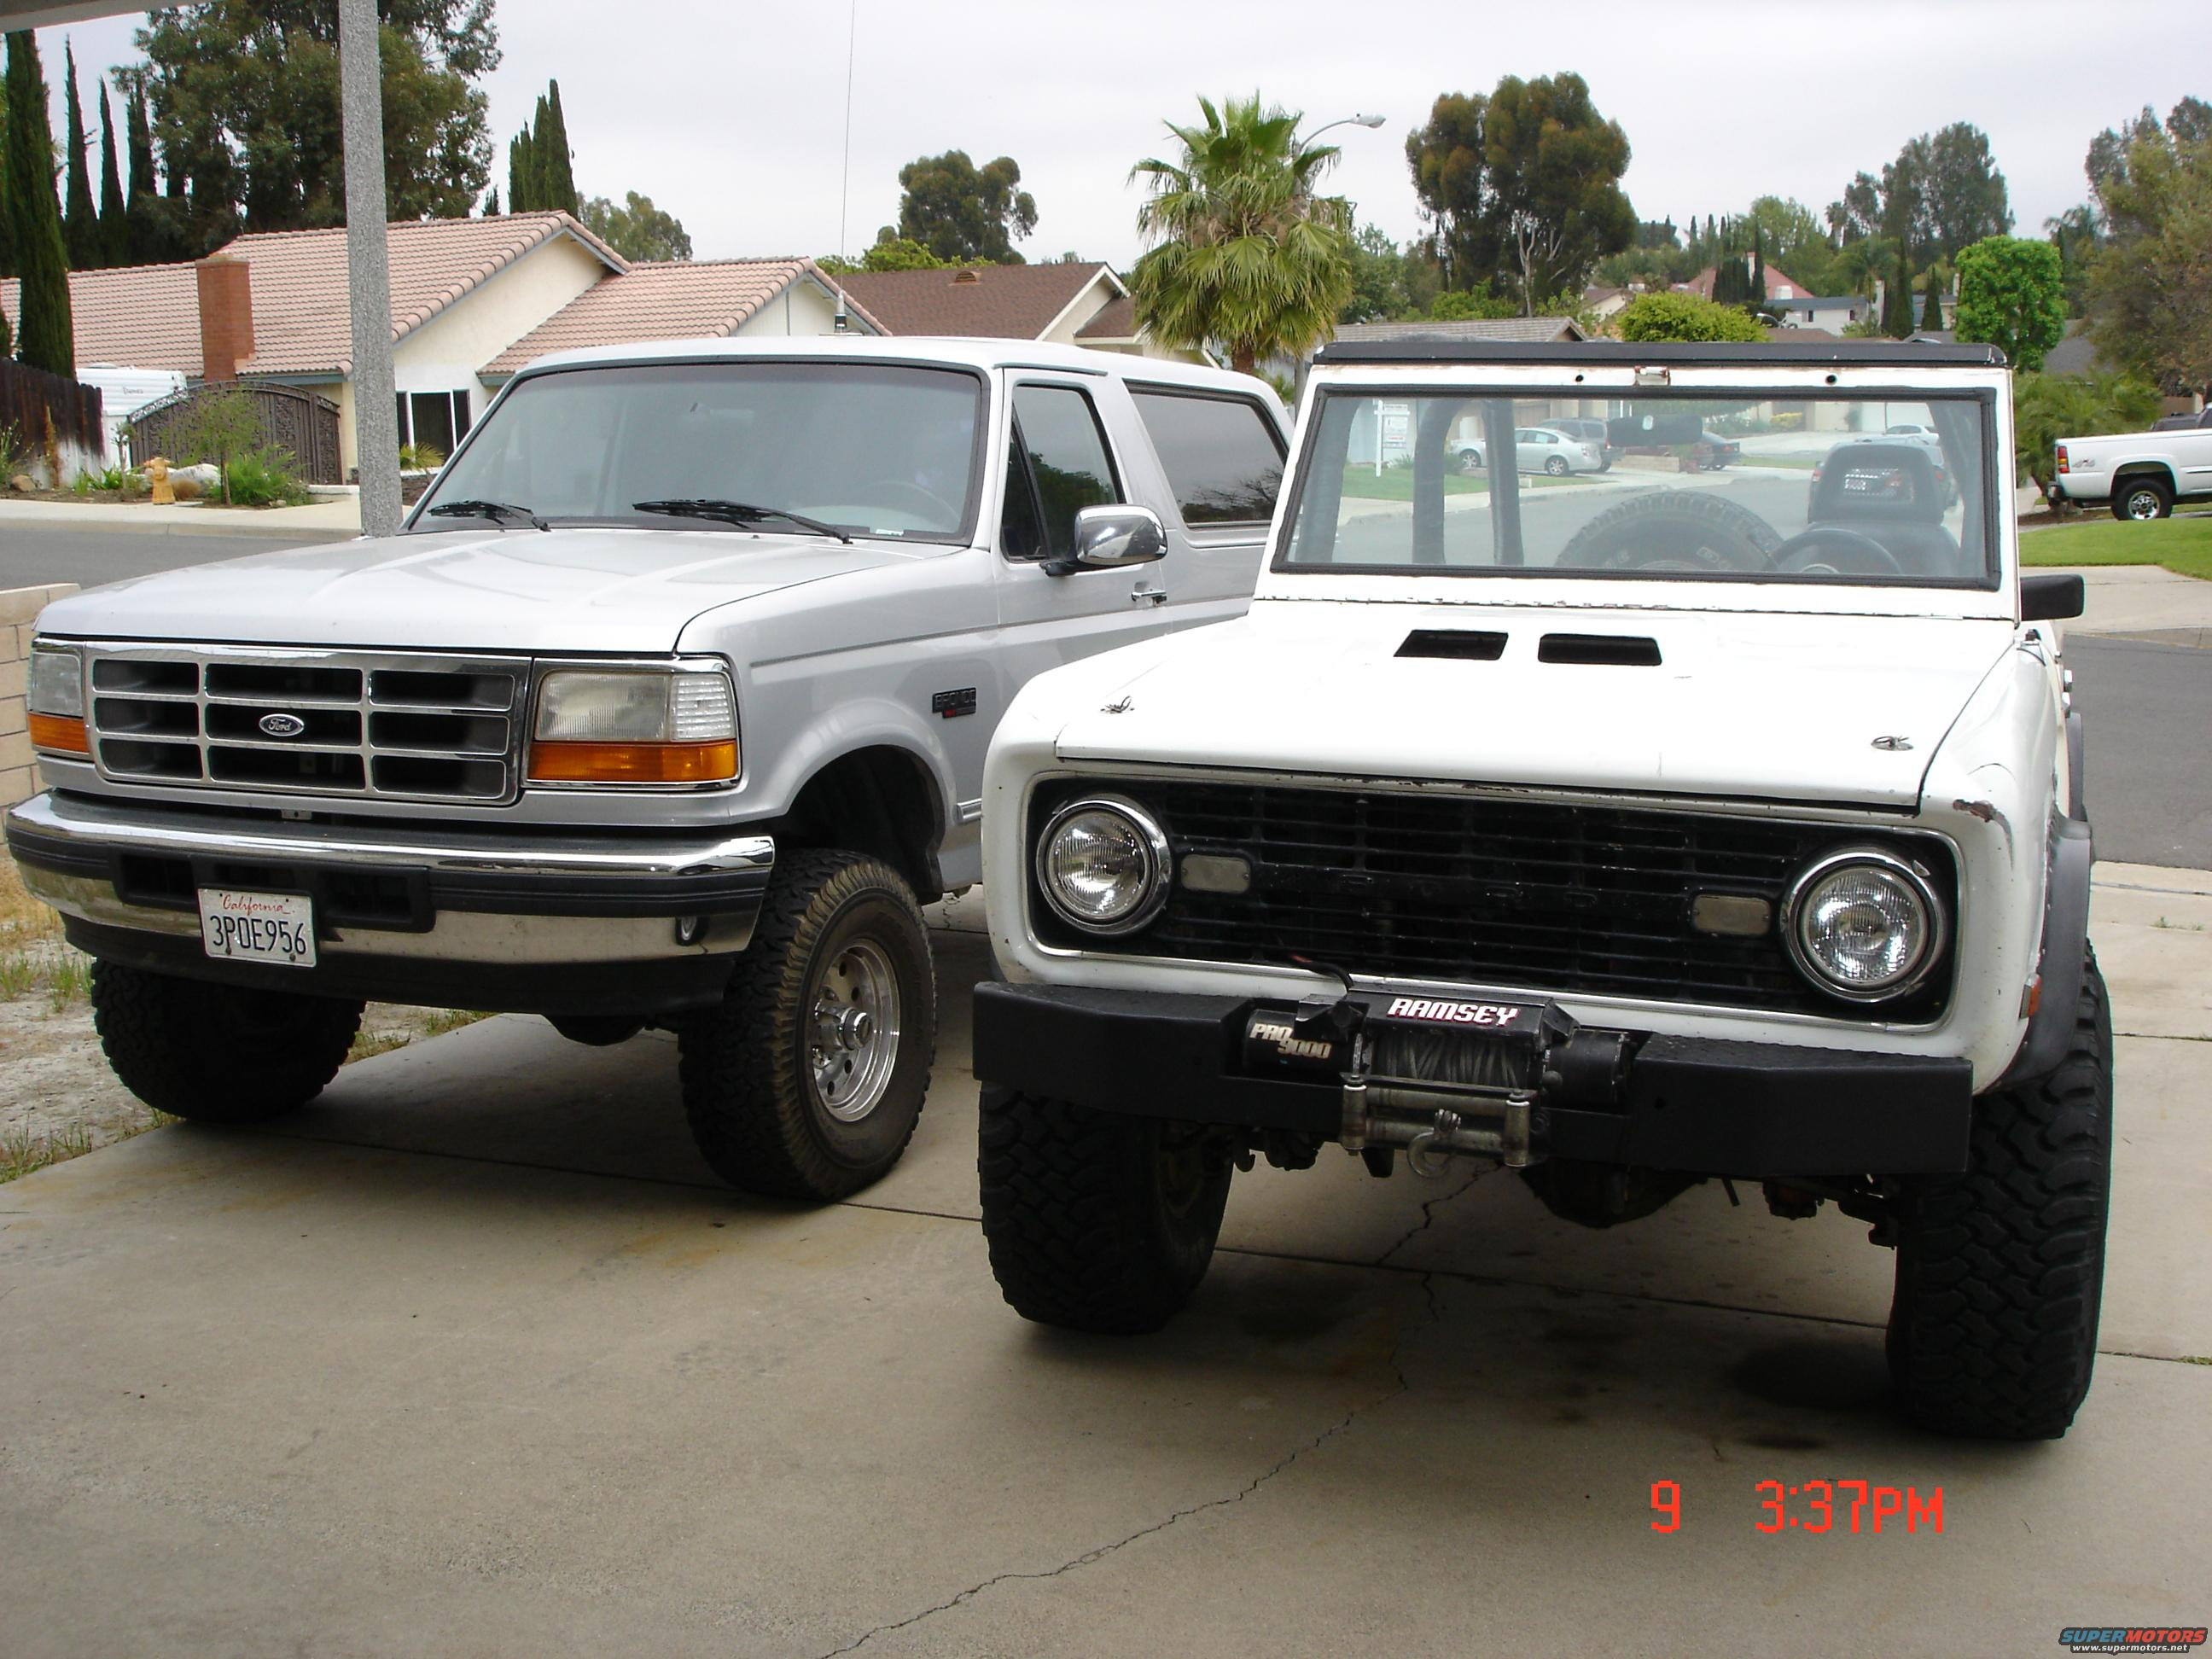 Ford bronco release date in Perth